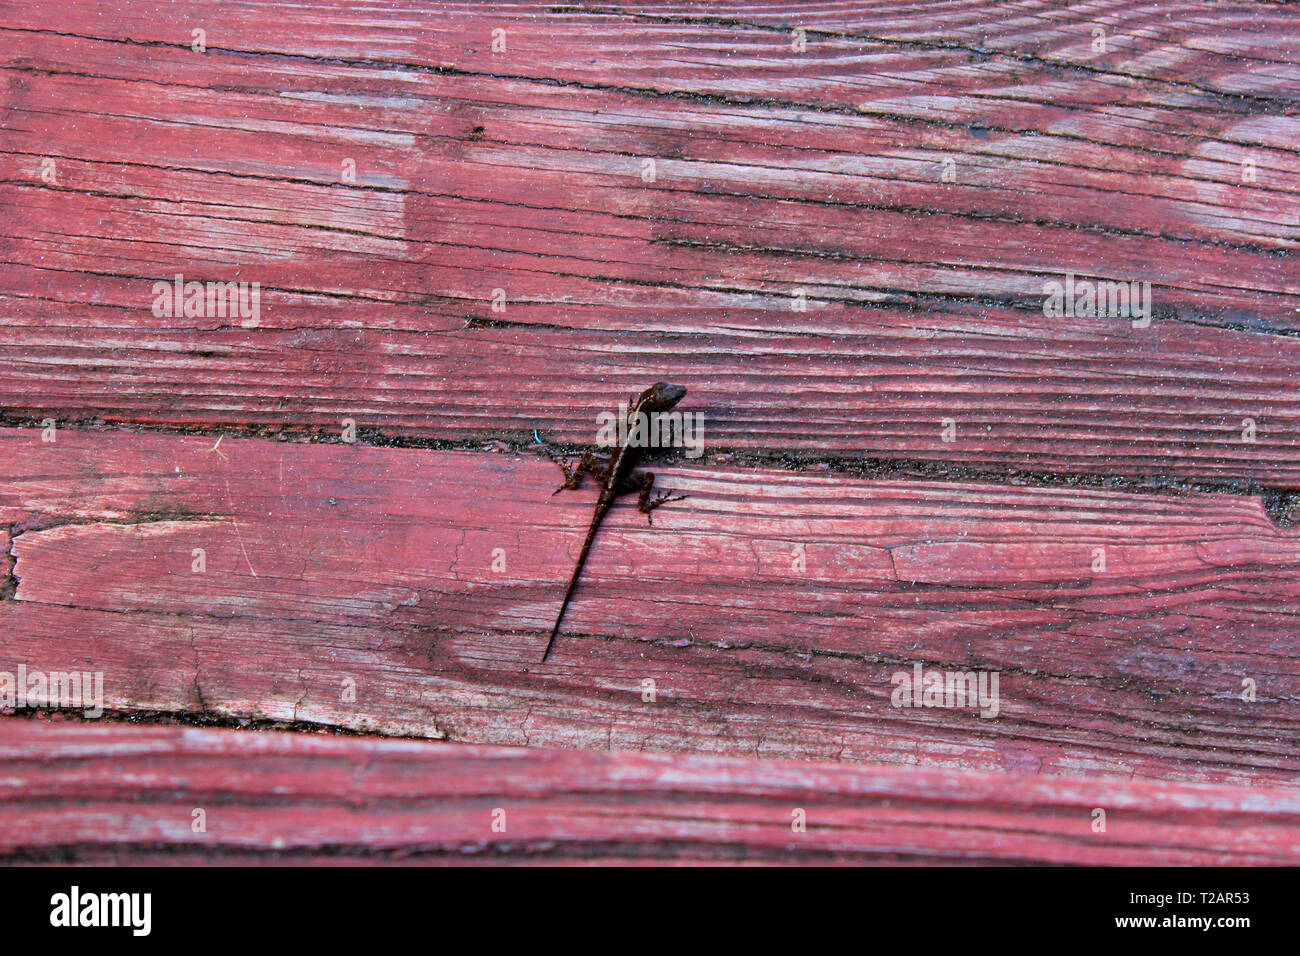 Small lizzard on red wood in Puerto Rico Stock Photo